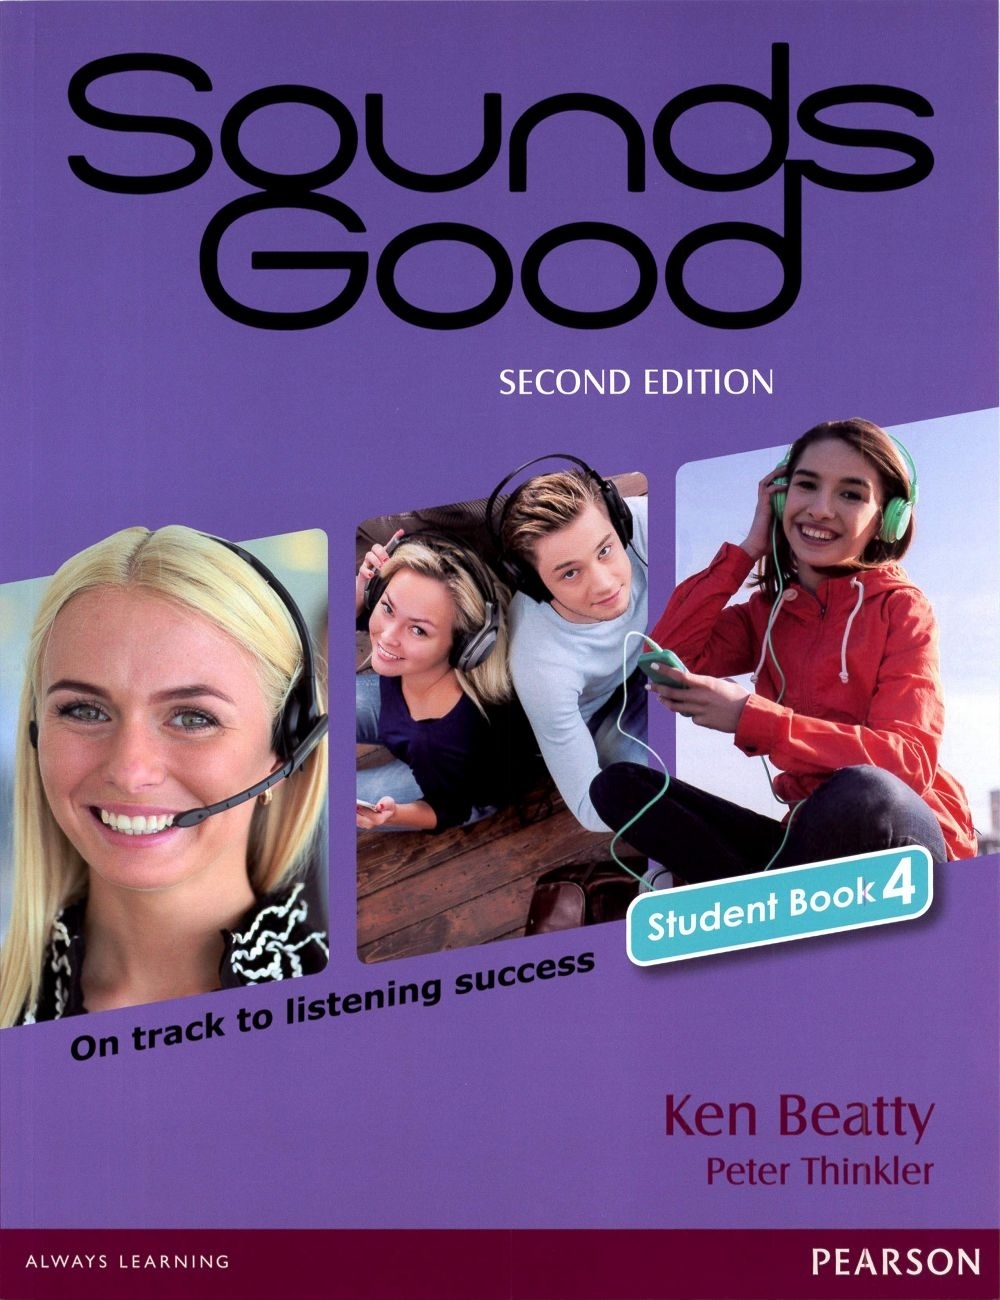 Sounds Good 2/e (4) Student Book